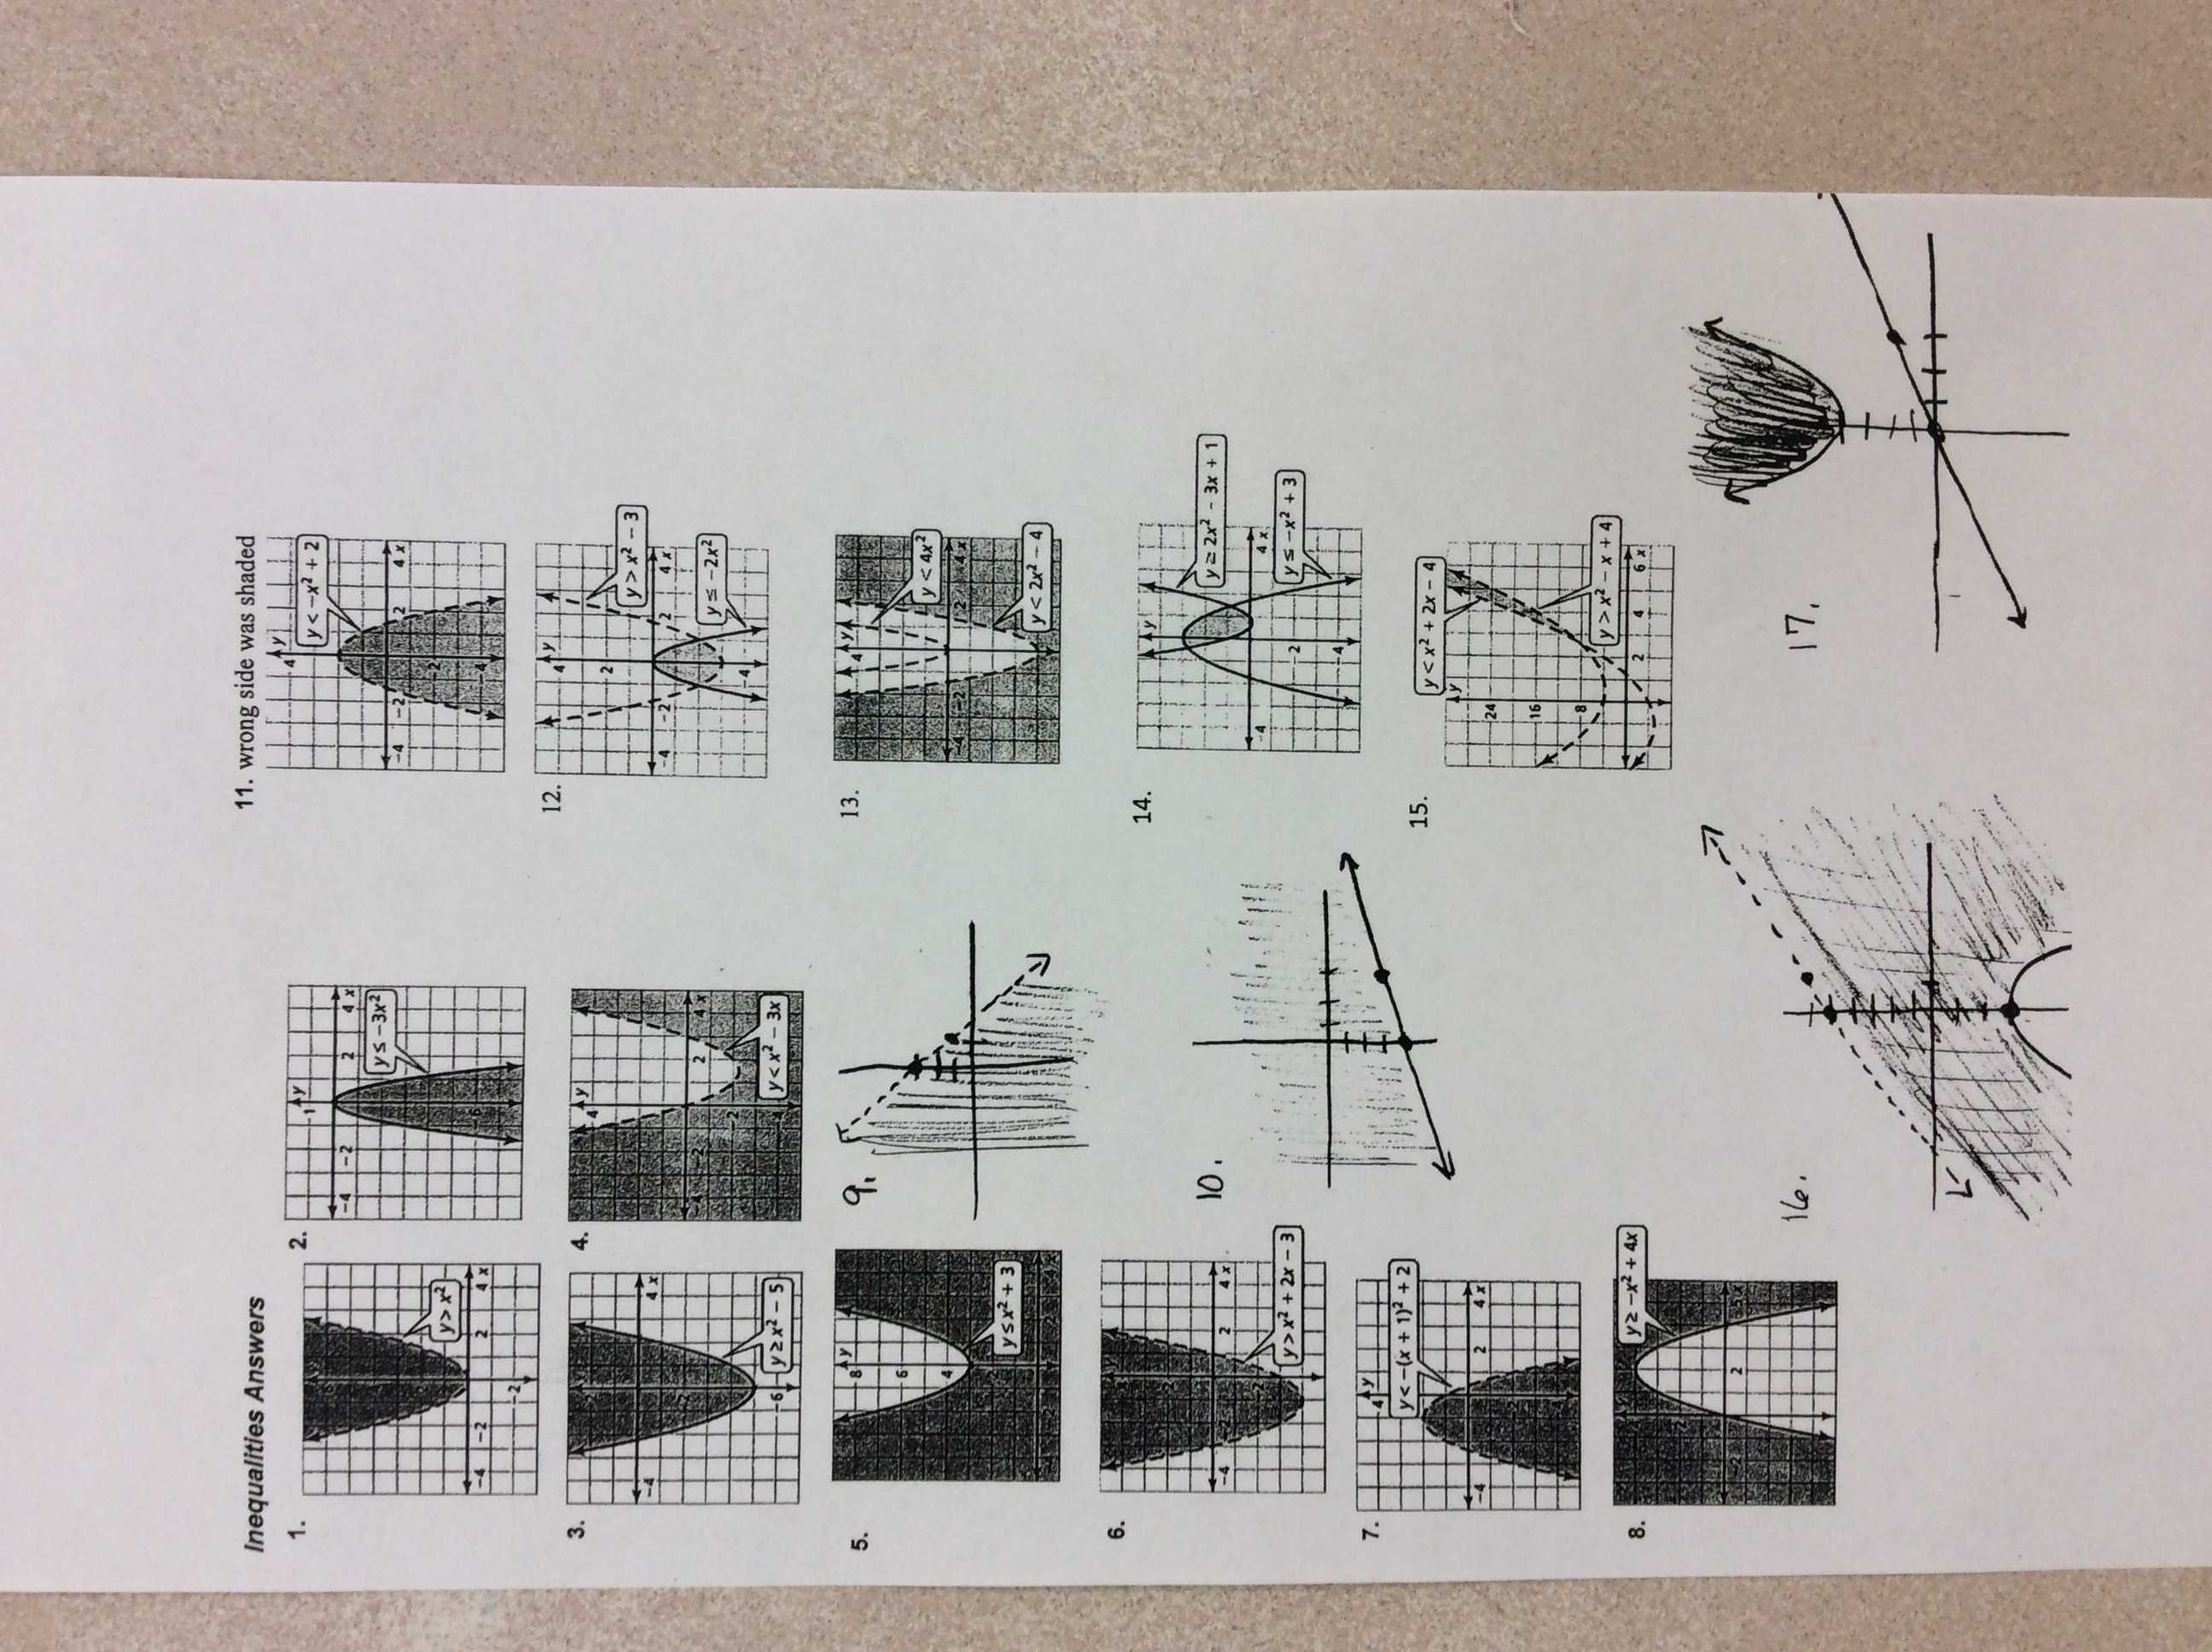 Scholastic Art Worksheet Answers